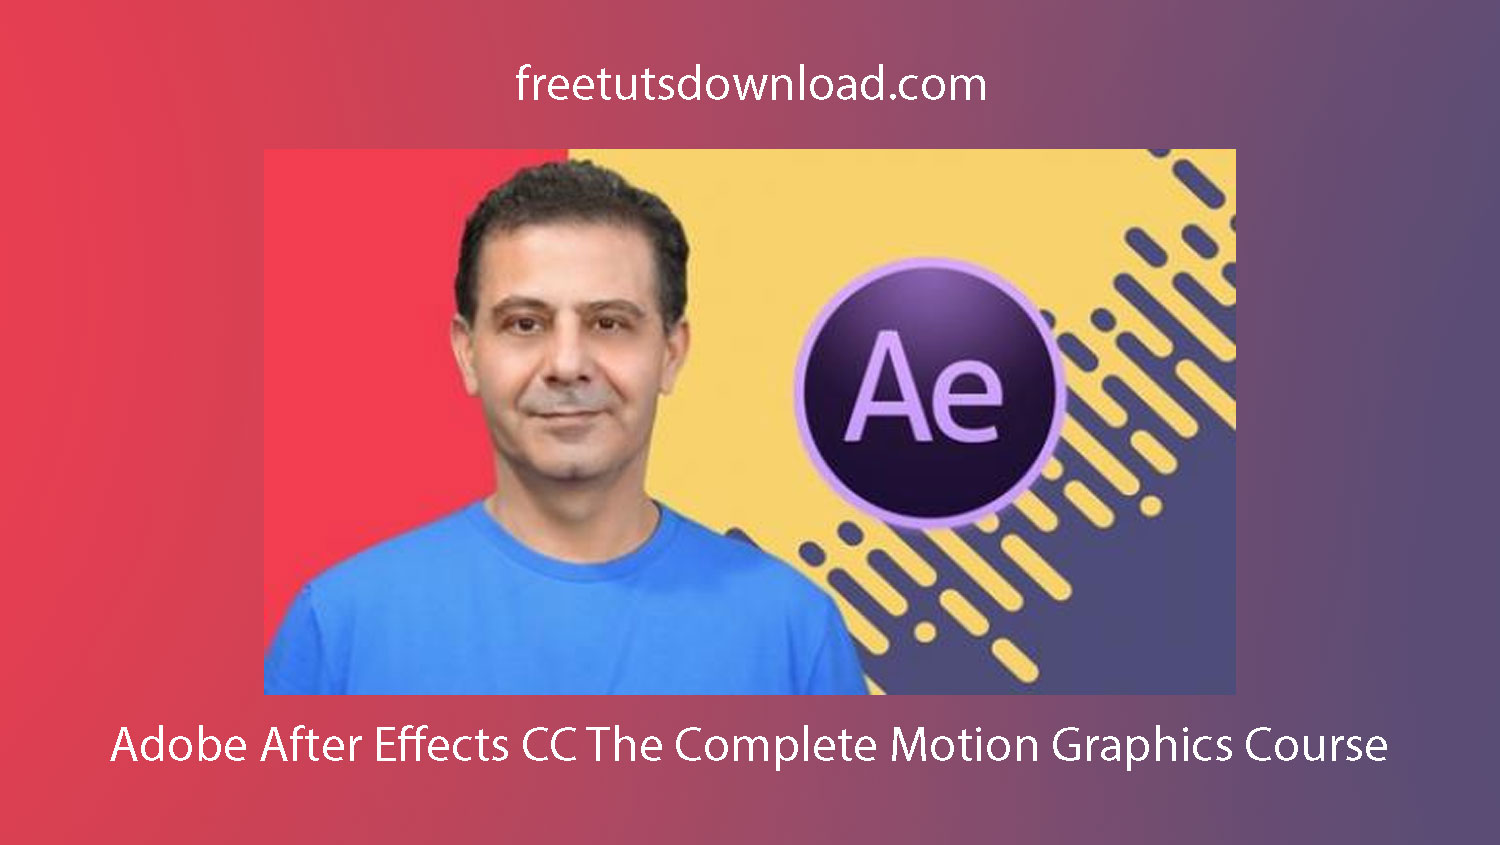 Adobe After Effects CC The Complete Motion Graphics Course